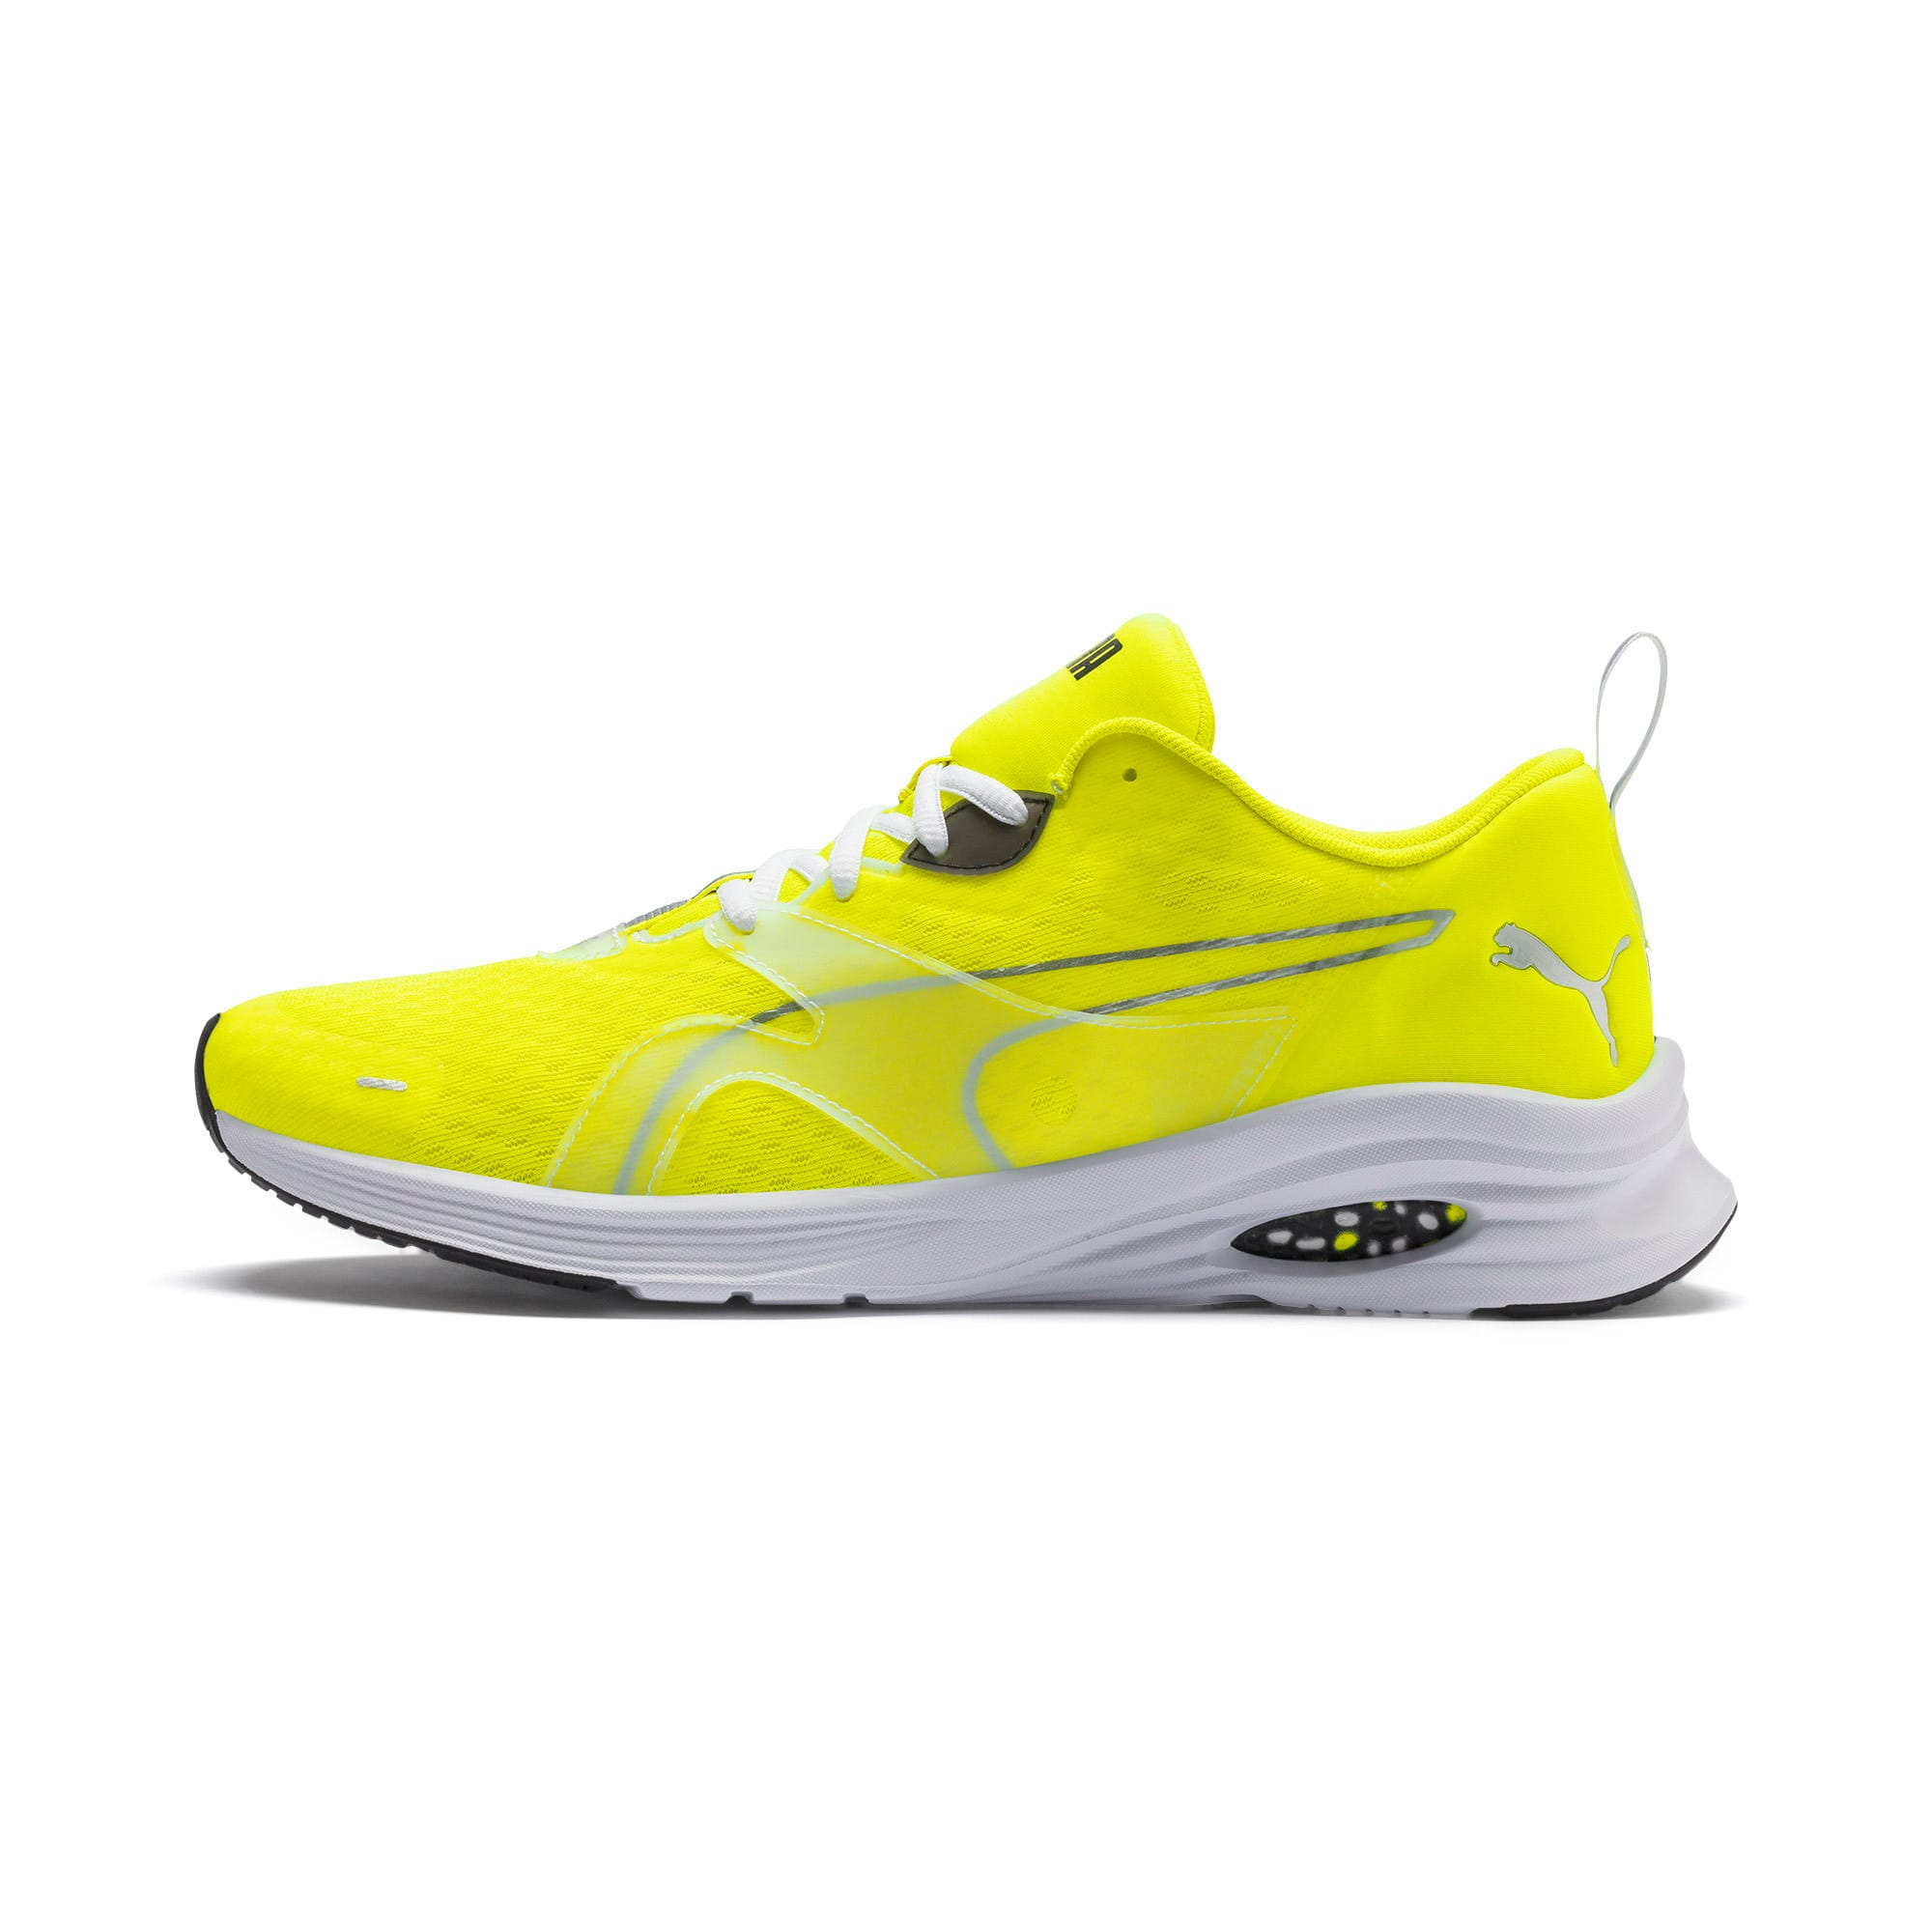 HYBRID Fuego Lights Men's Running Shoes, Yellow Alert, large